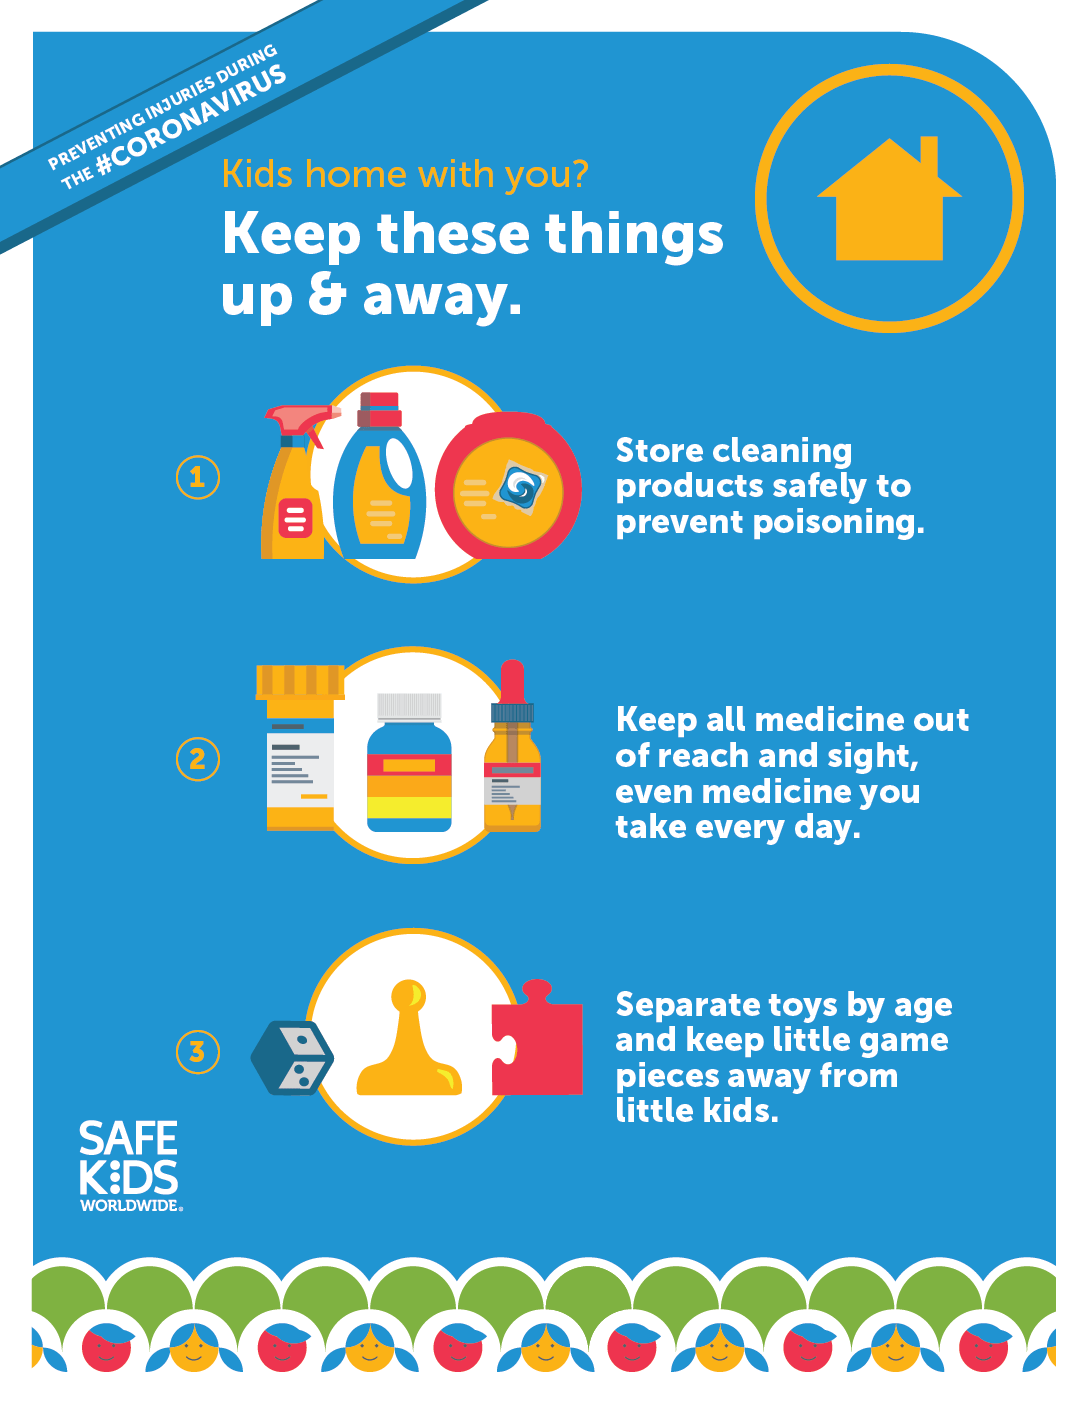 3 Safety Tips To Remember When Young Kids Are Home